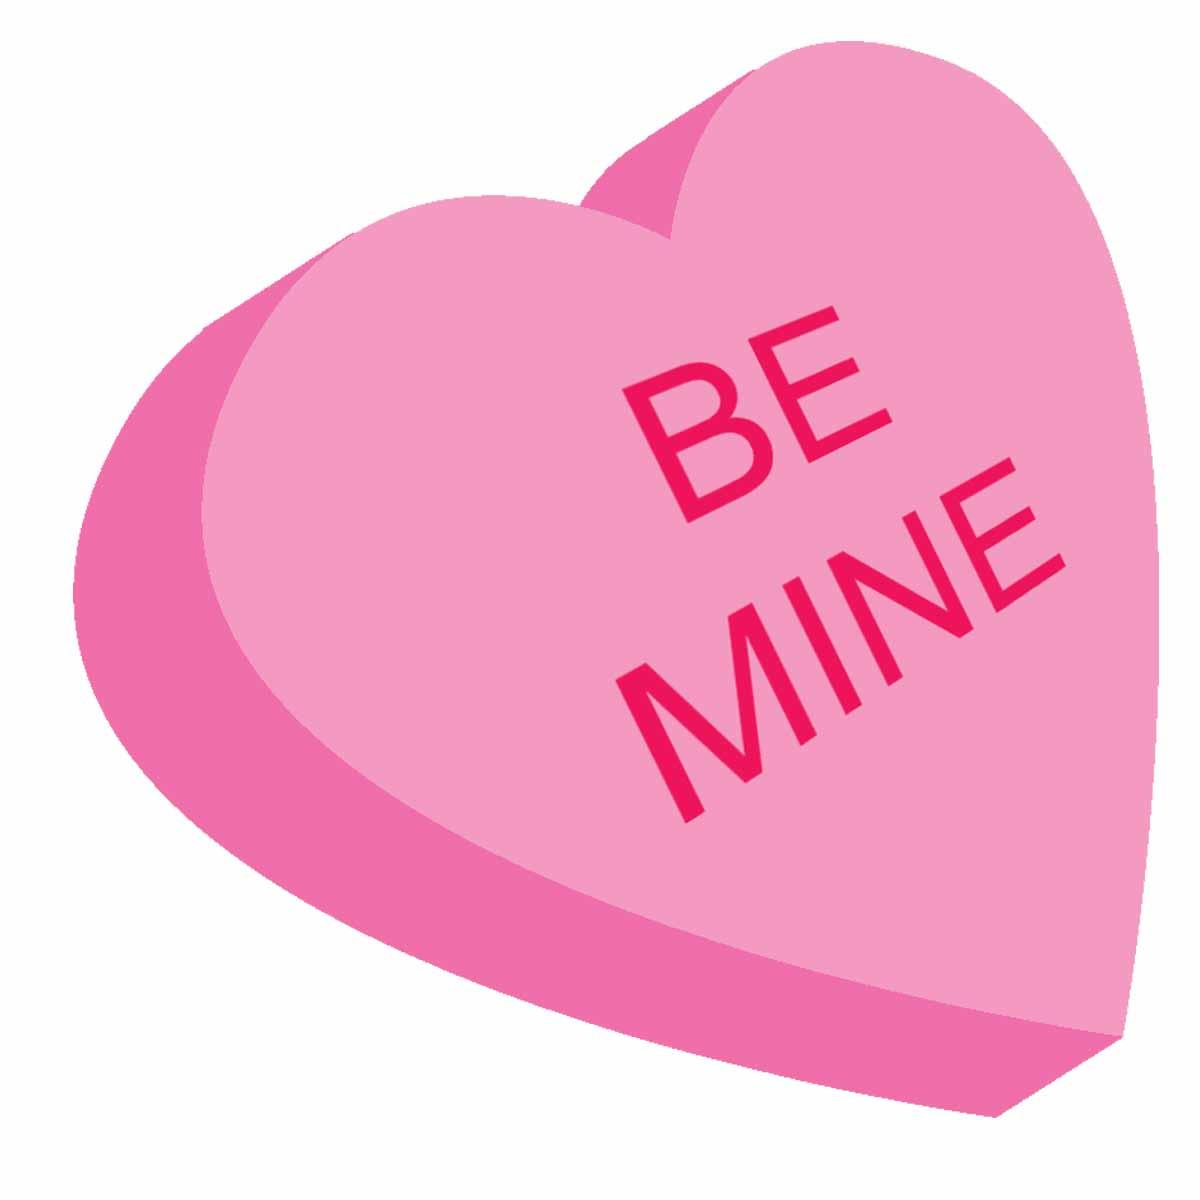 1200x1200 Romantic Valentine Candy Hearts Clipart Funny Pictures Shake